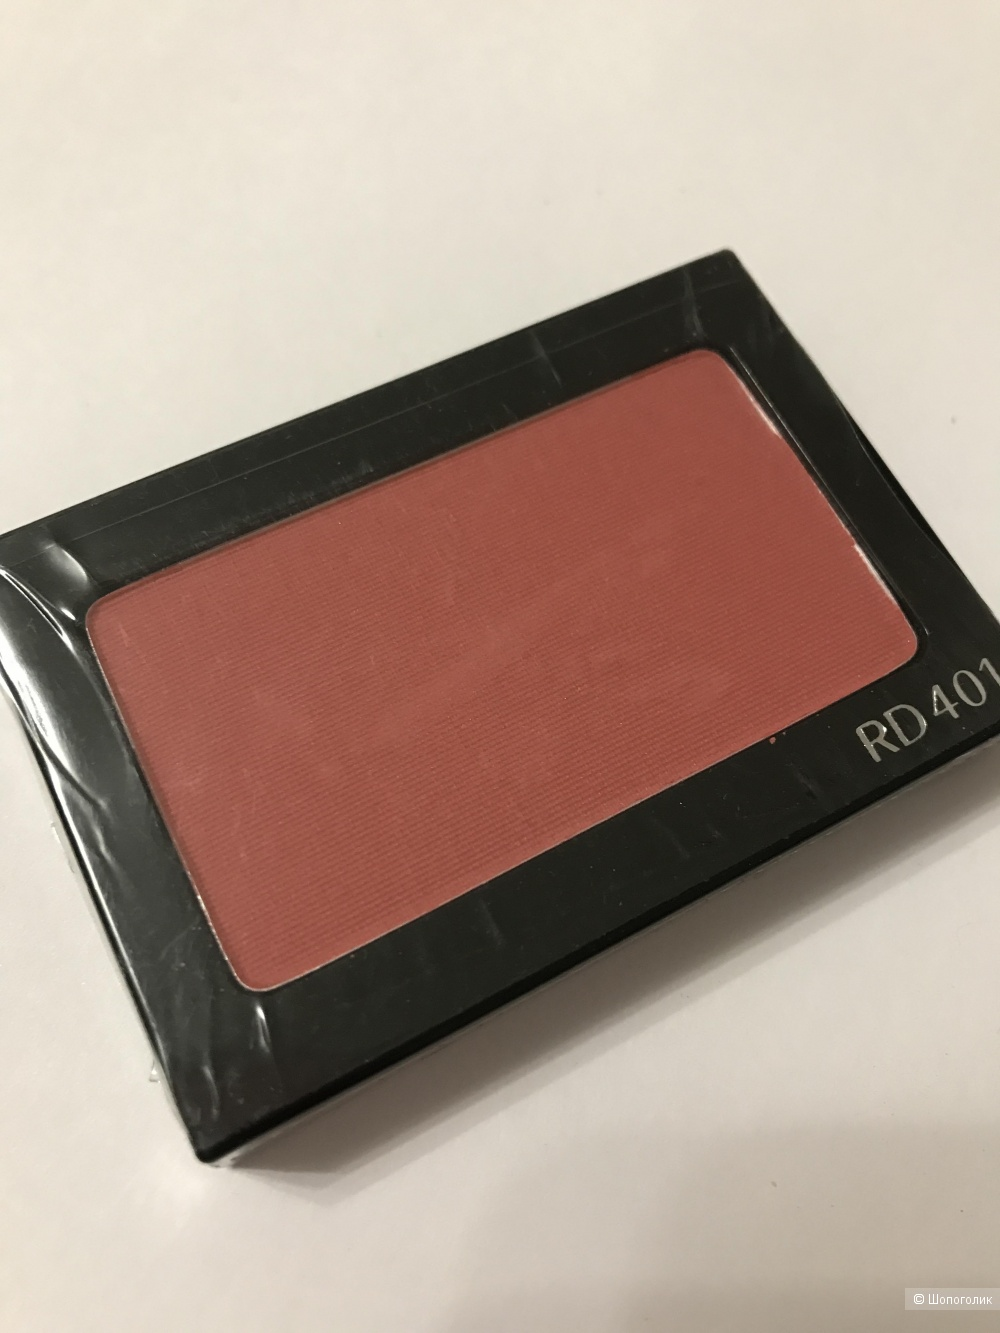 Румяна Shiseido Luminizing Satin Face Color, RD401.